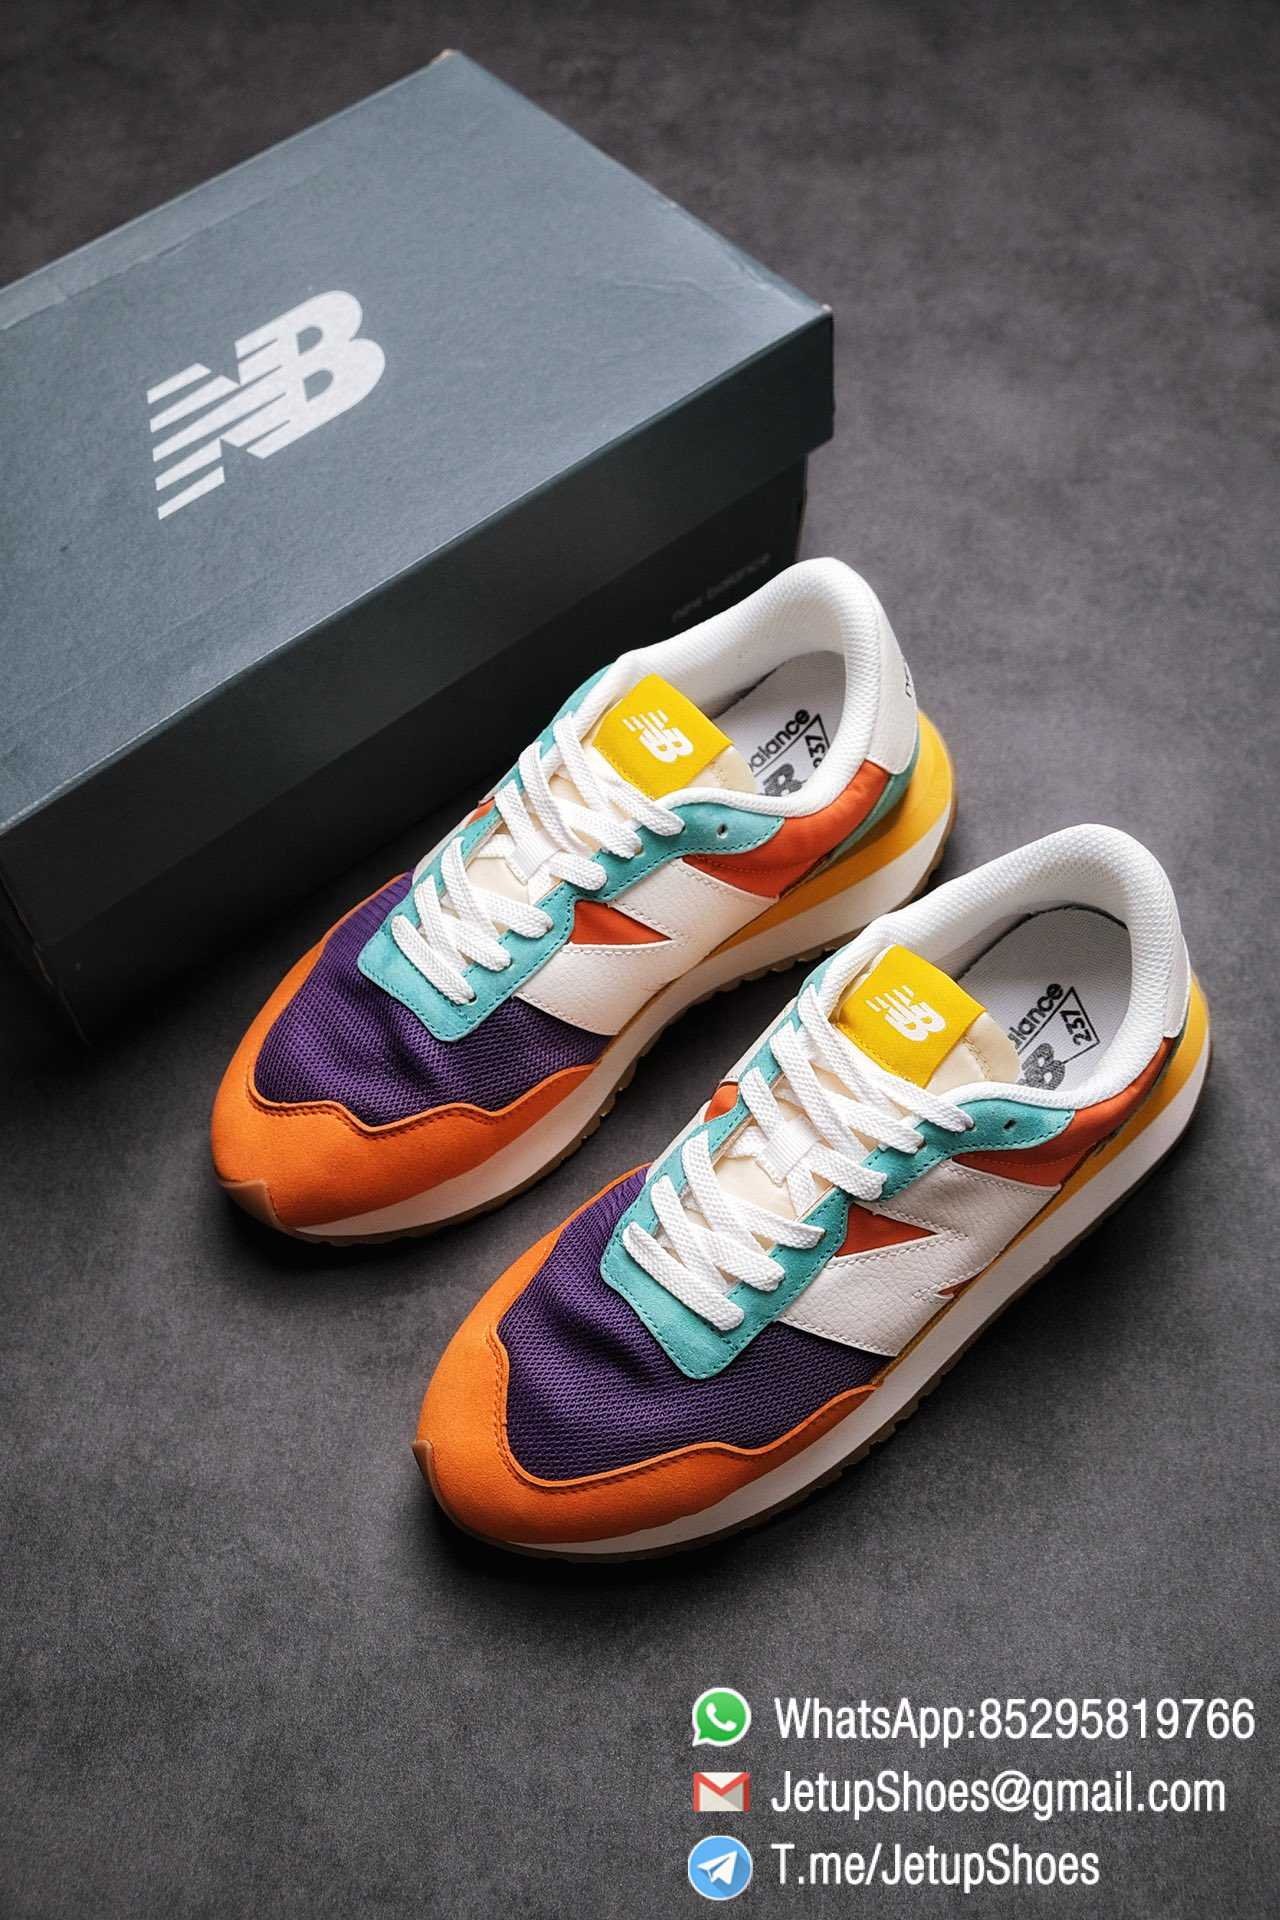 Best Replica New Balance 237 Yellow Blue Orange Suede Purple Mesh Stitching SKU MS237LB2 High Quality Fake Multi Color Running Shoes 04